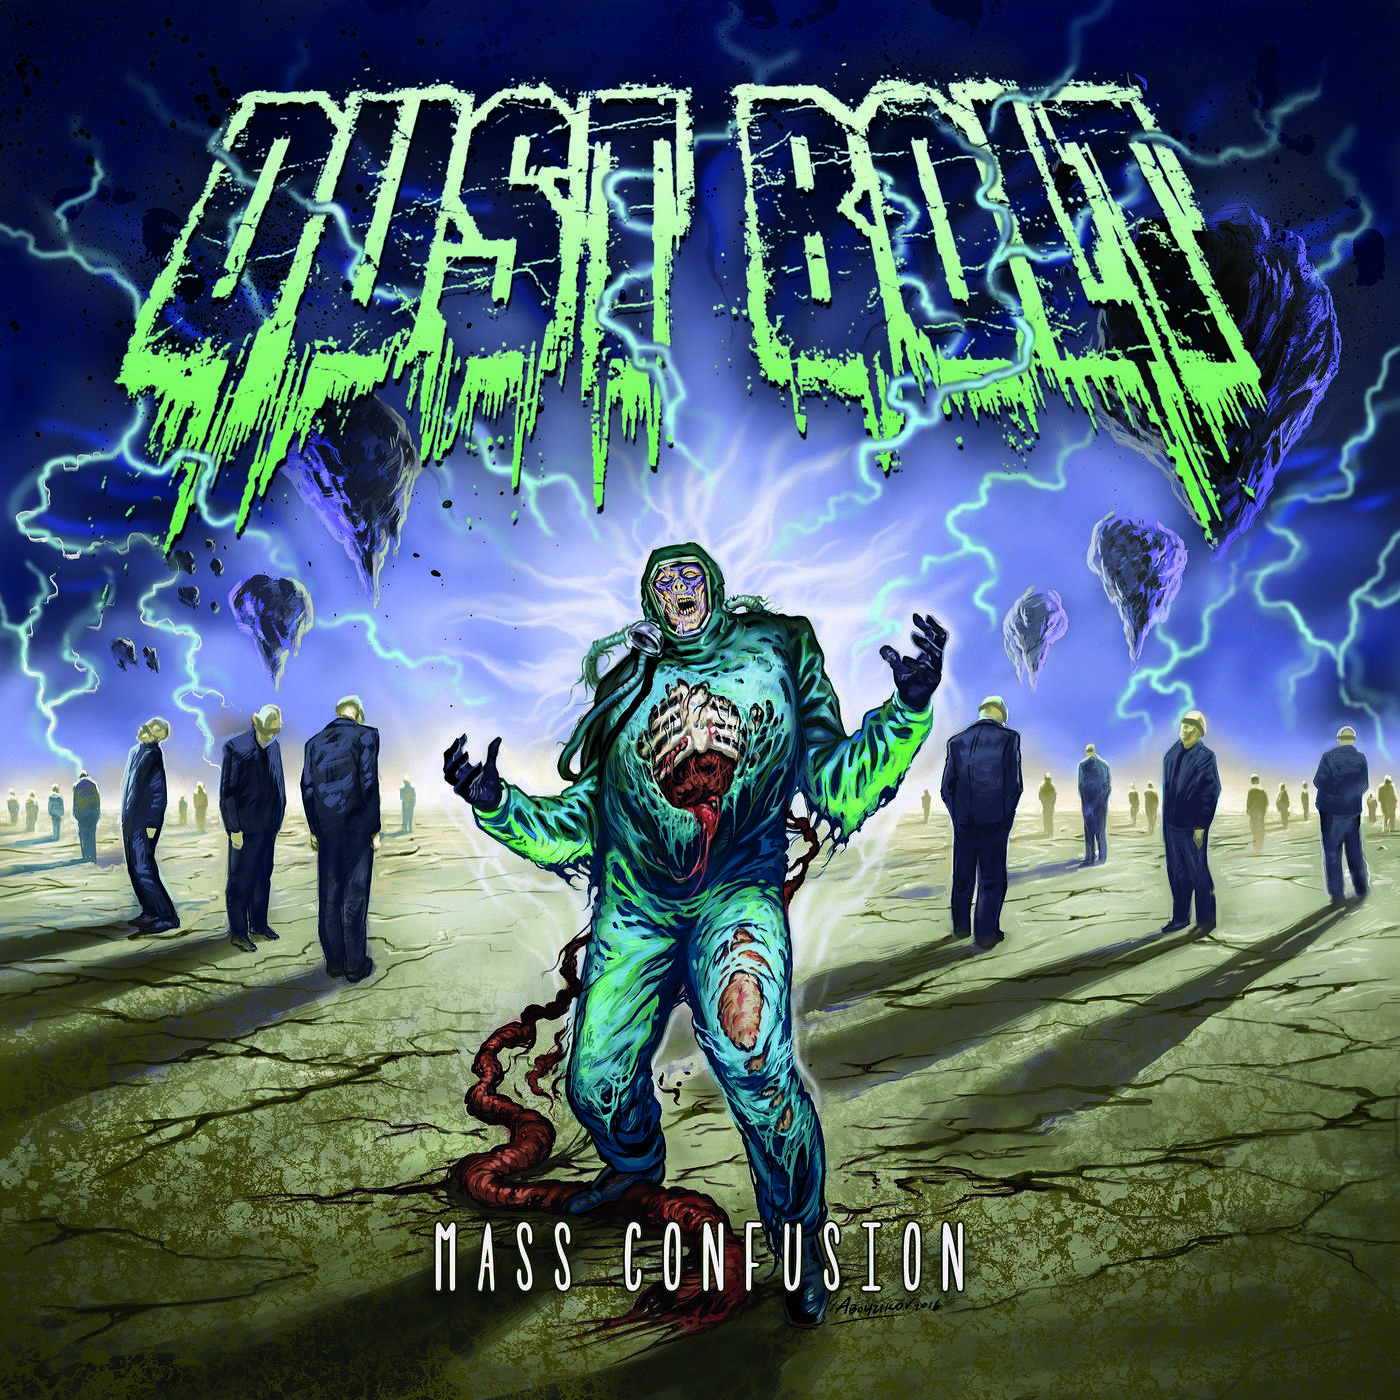 Dust Bolt: Mass Confusion (2016) Book Cover